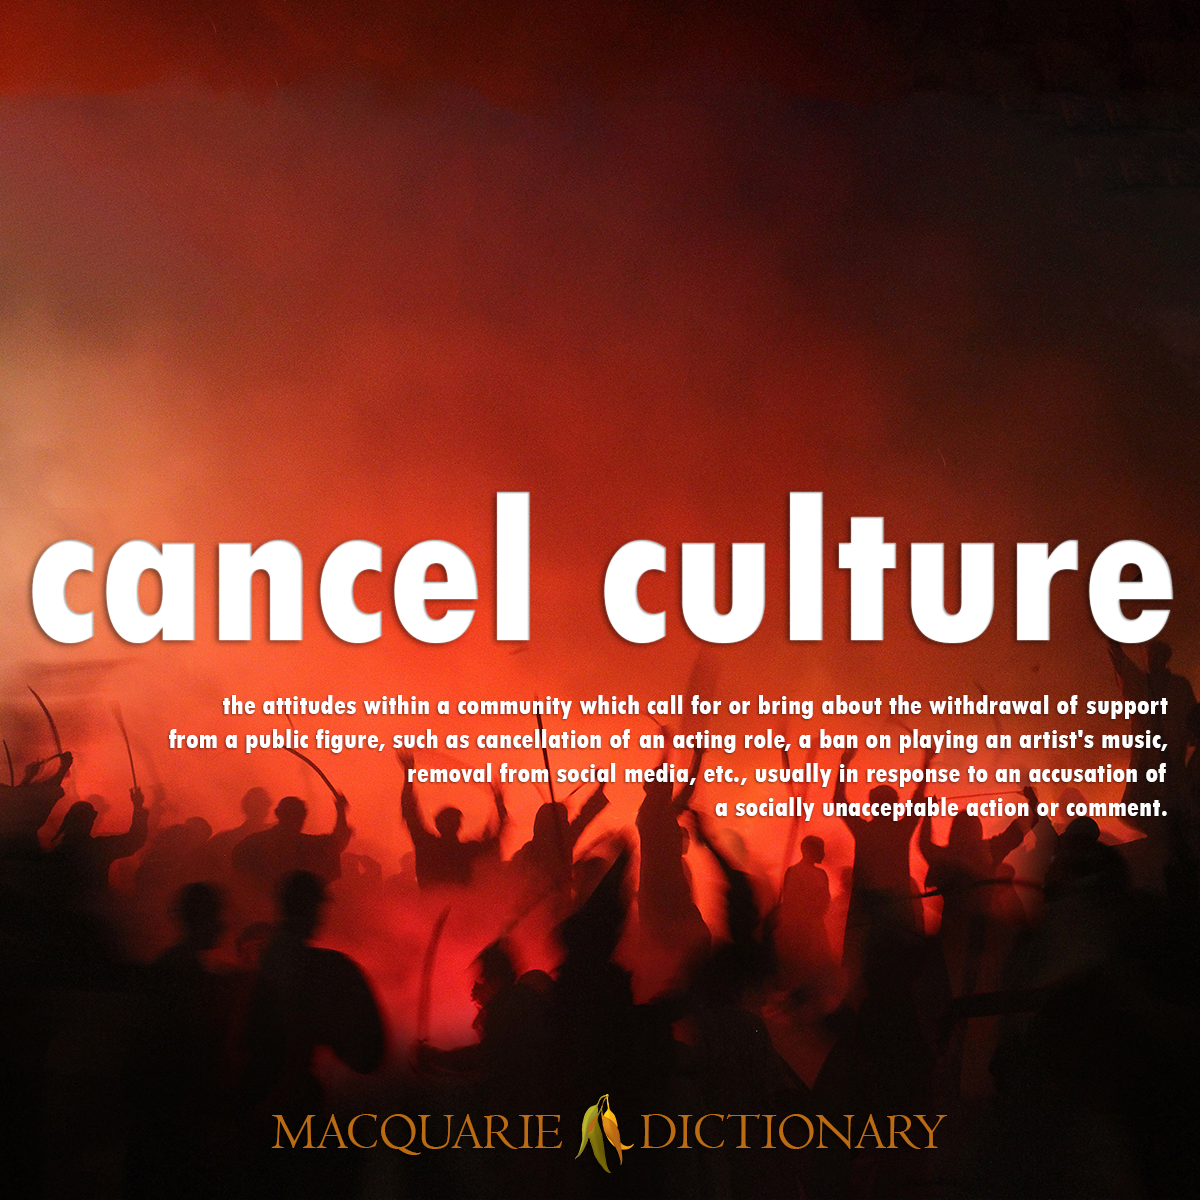 Image of Word of the Year - Macquarie Dictionary - cancel culture - the attitudes within a community which call for or bring about the withdrawal of support from a public figure